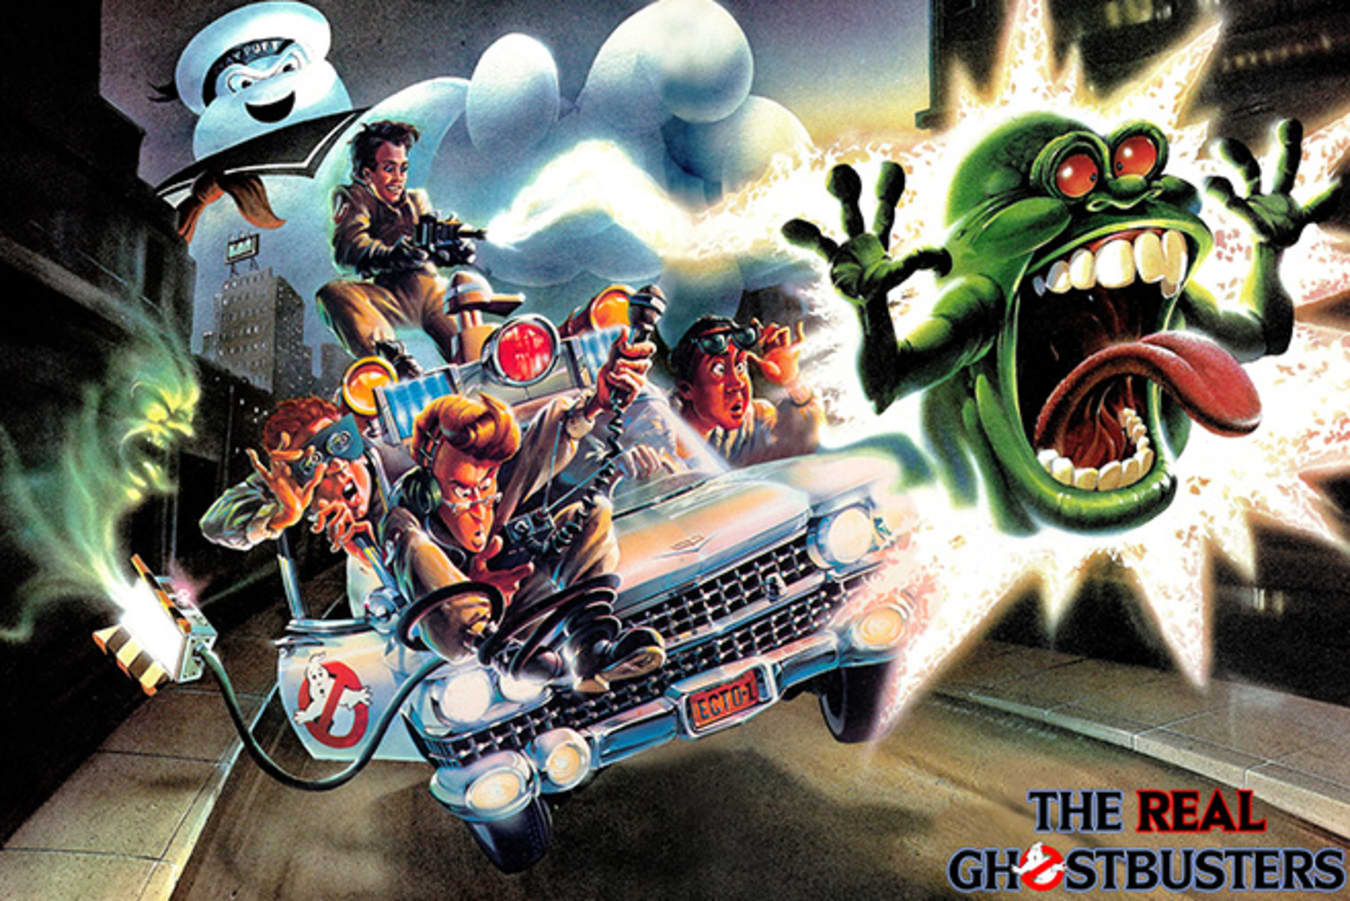 ECTO-1 Car Ghostbusters